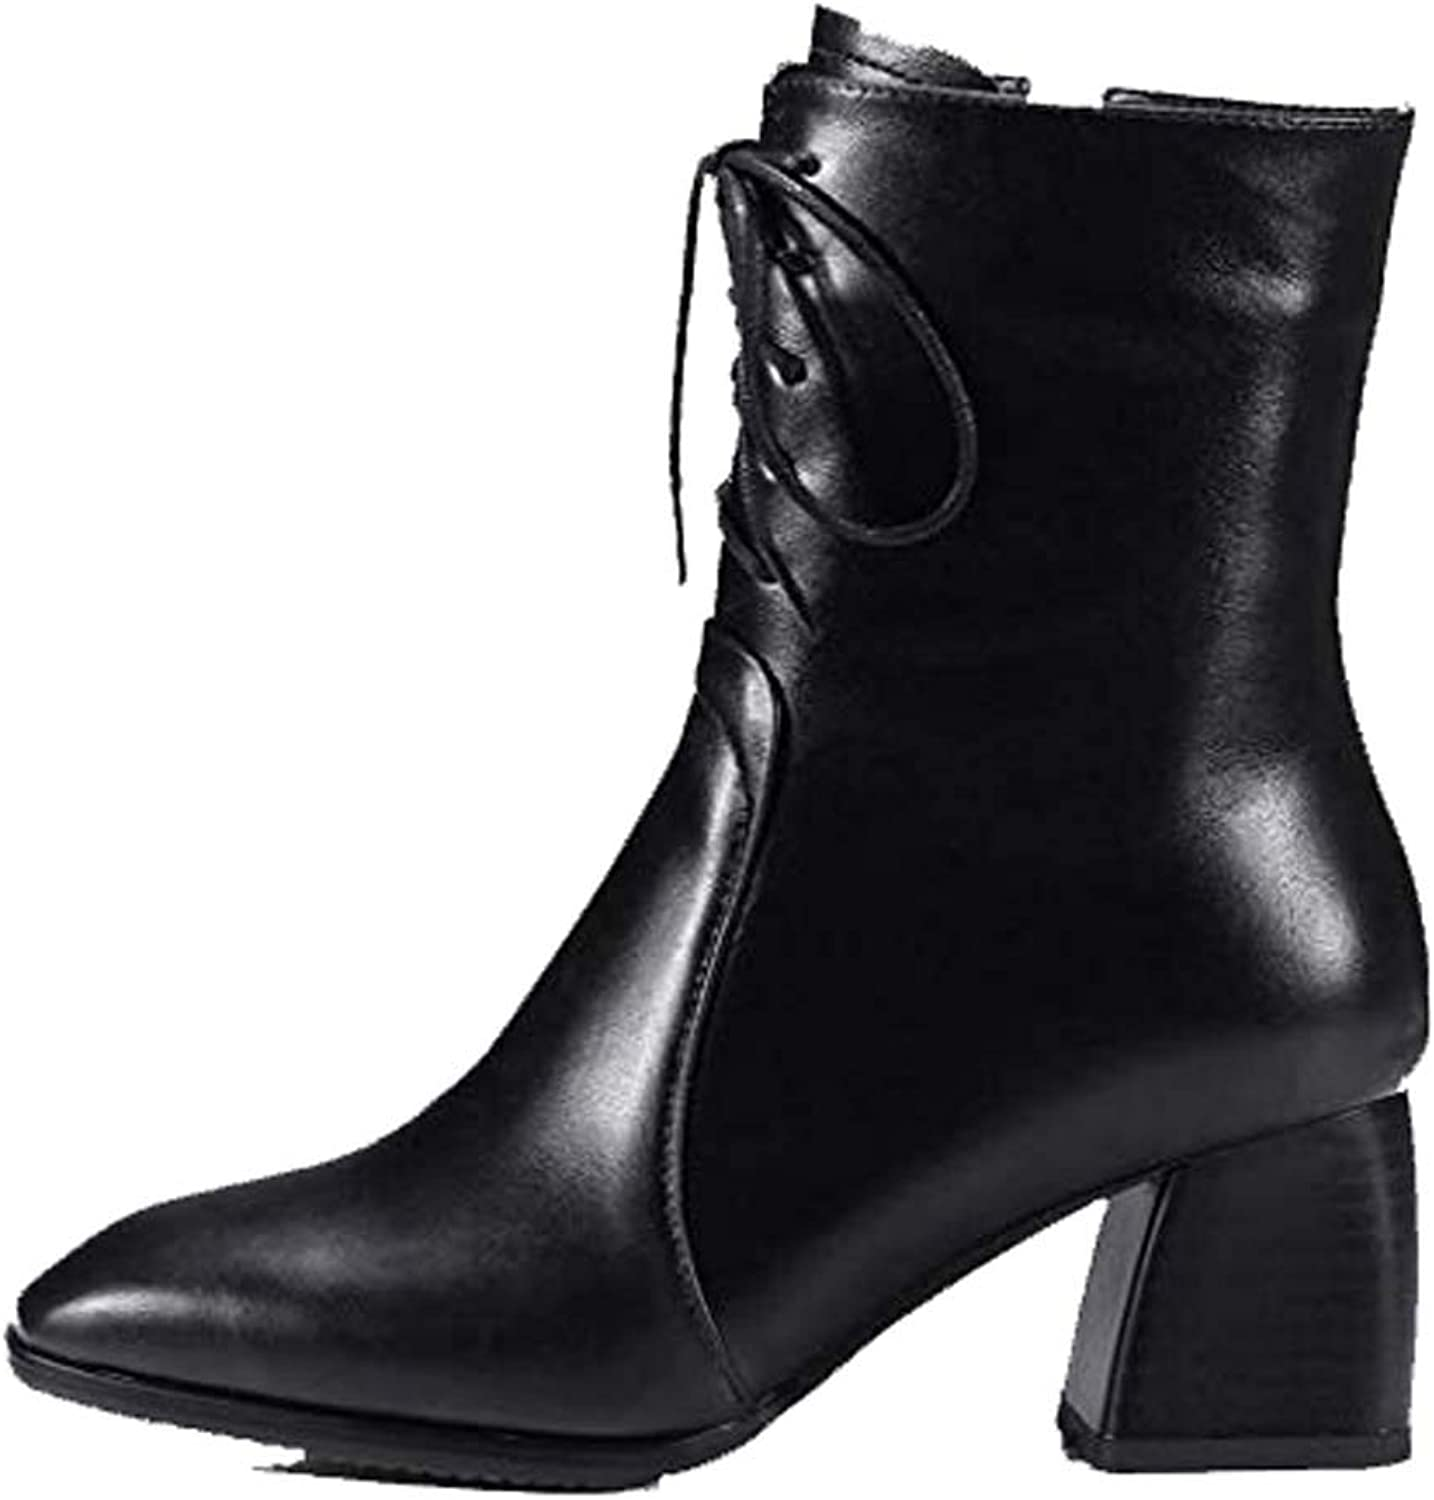 Women's Martin Boots Square Head Thick with Side Zipper Low Boots Leather Women's Boots High Heel